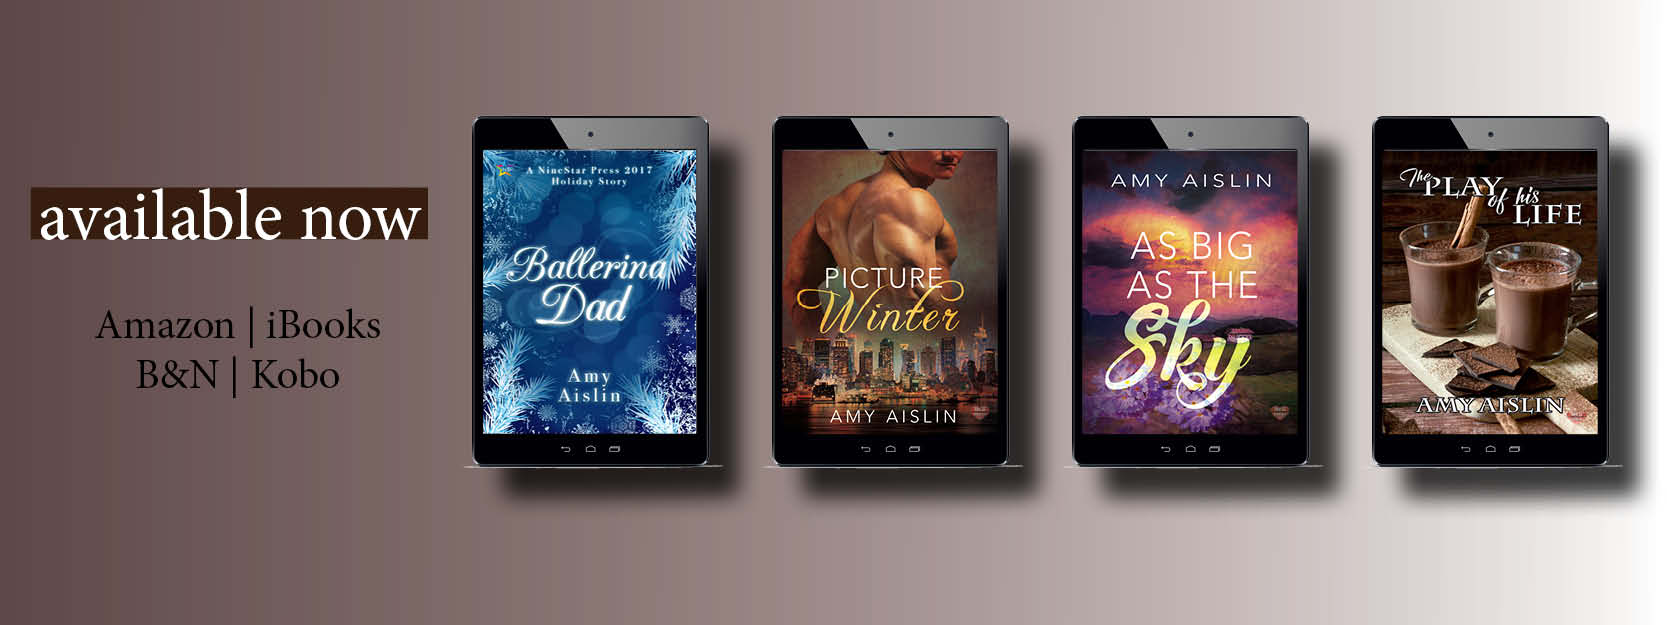 Amy Aislin's books